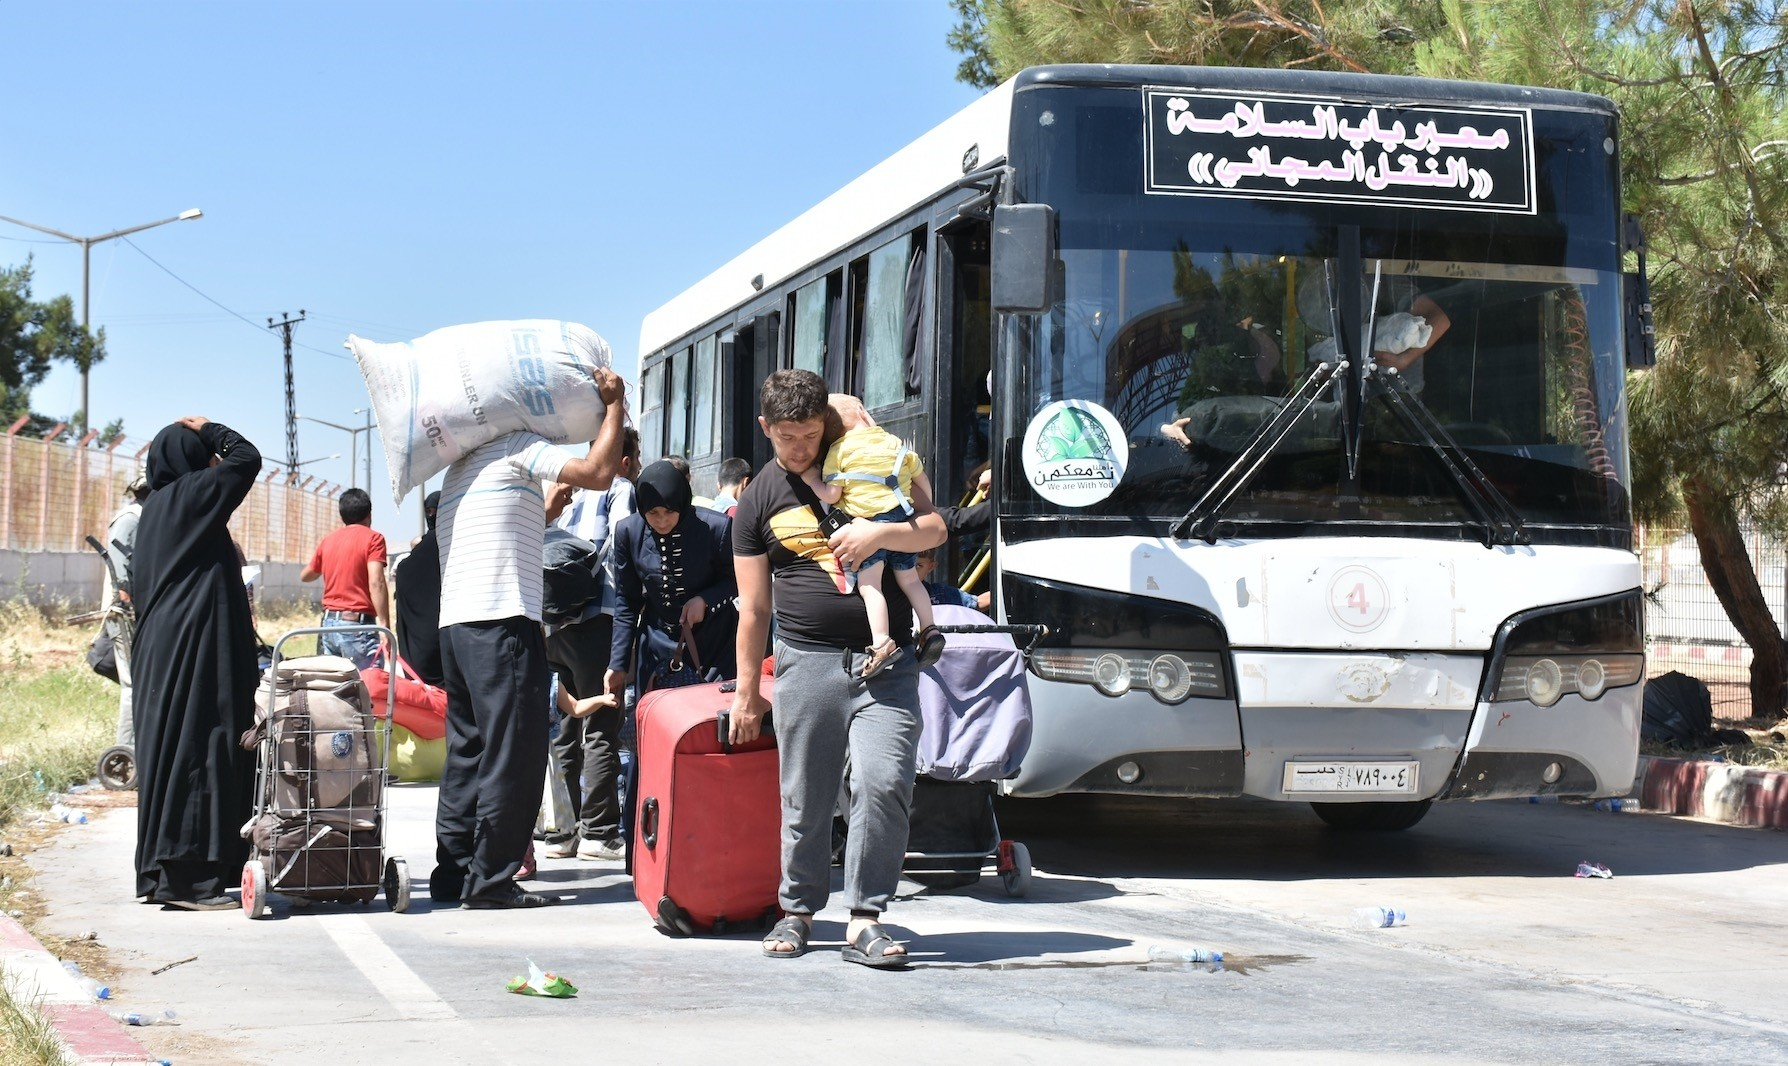 Syrians disembark buses at the u00d6ncu00fcpu0131nar border crossing.